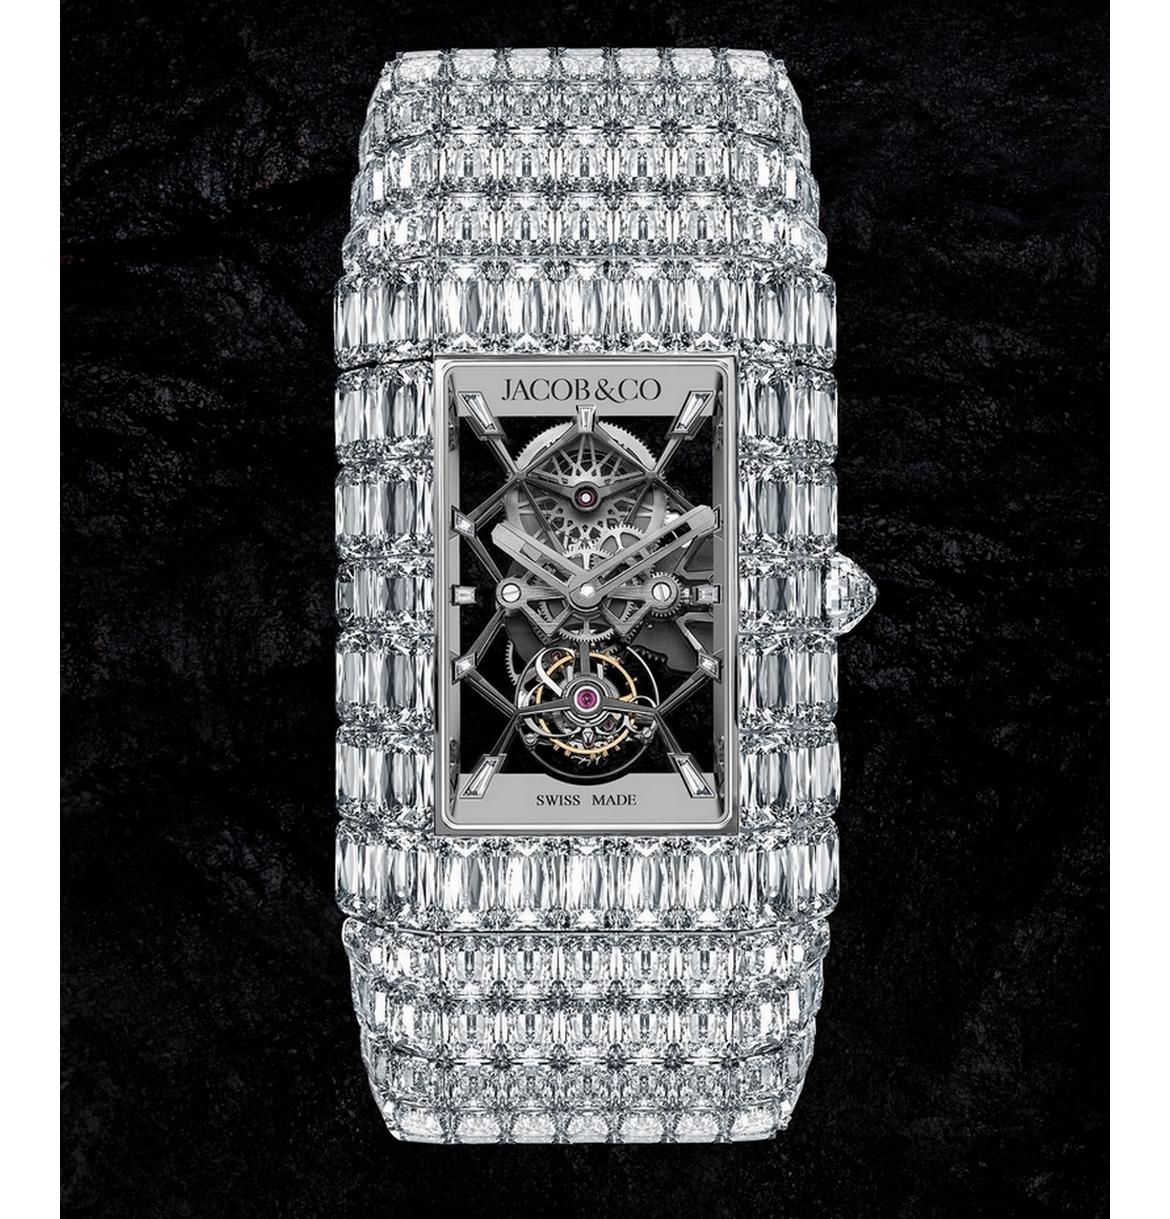 Just one for the whole world - Jacob & Co's newest Billionaire Watch costs $7 million and dazzles with 189 carats of astounding Ashoka diamonds : Luxurylaunches